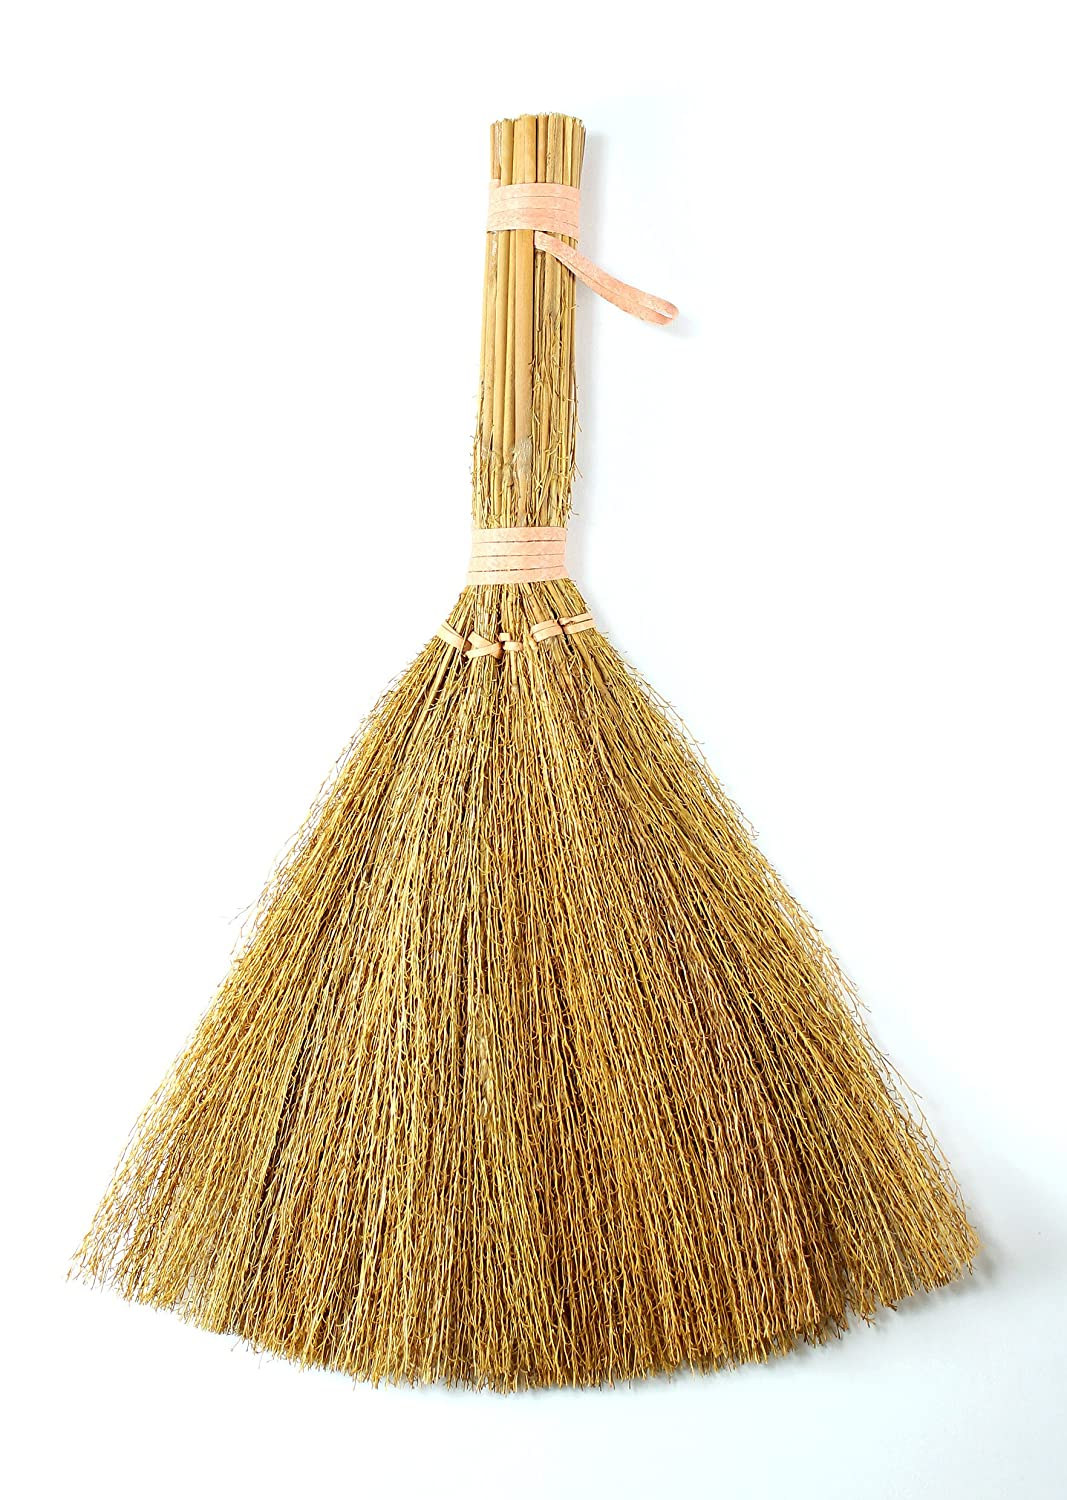 Amazon 12 Inch Natural Straw Small Craft Brooms 12 Pieces Arts